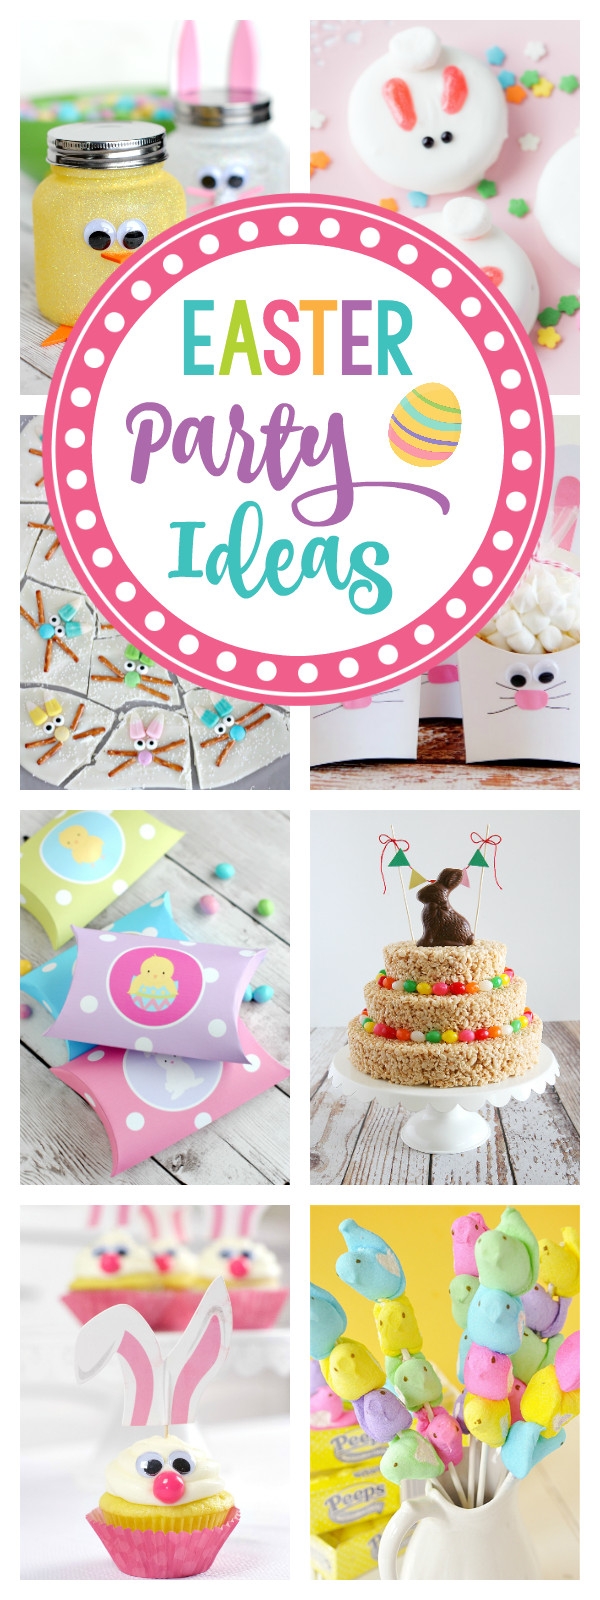 Best ideas about Easter Birthday Party . Save or Pin 25 Fun Easter Party Ideas for Kids – Fun Squared Now.